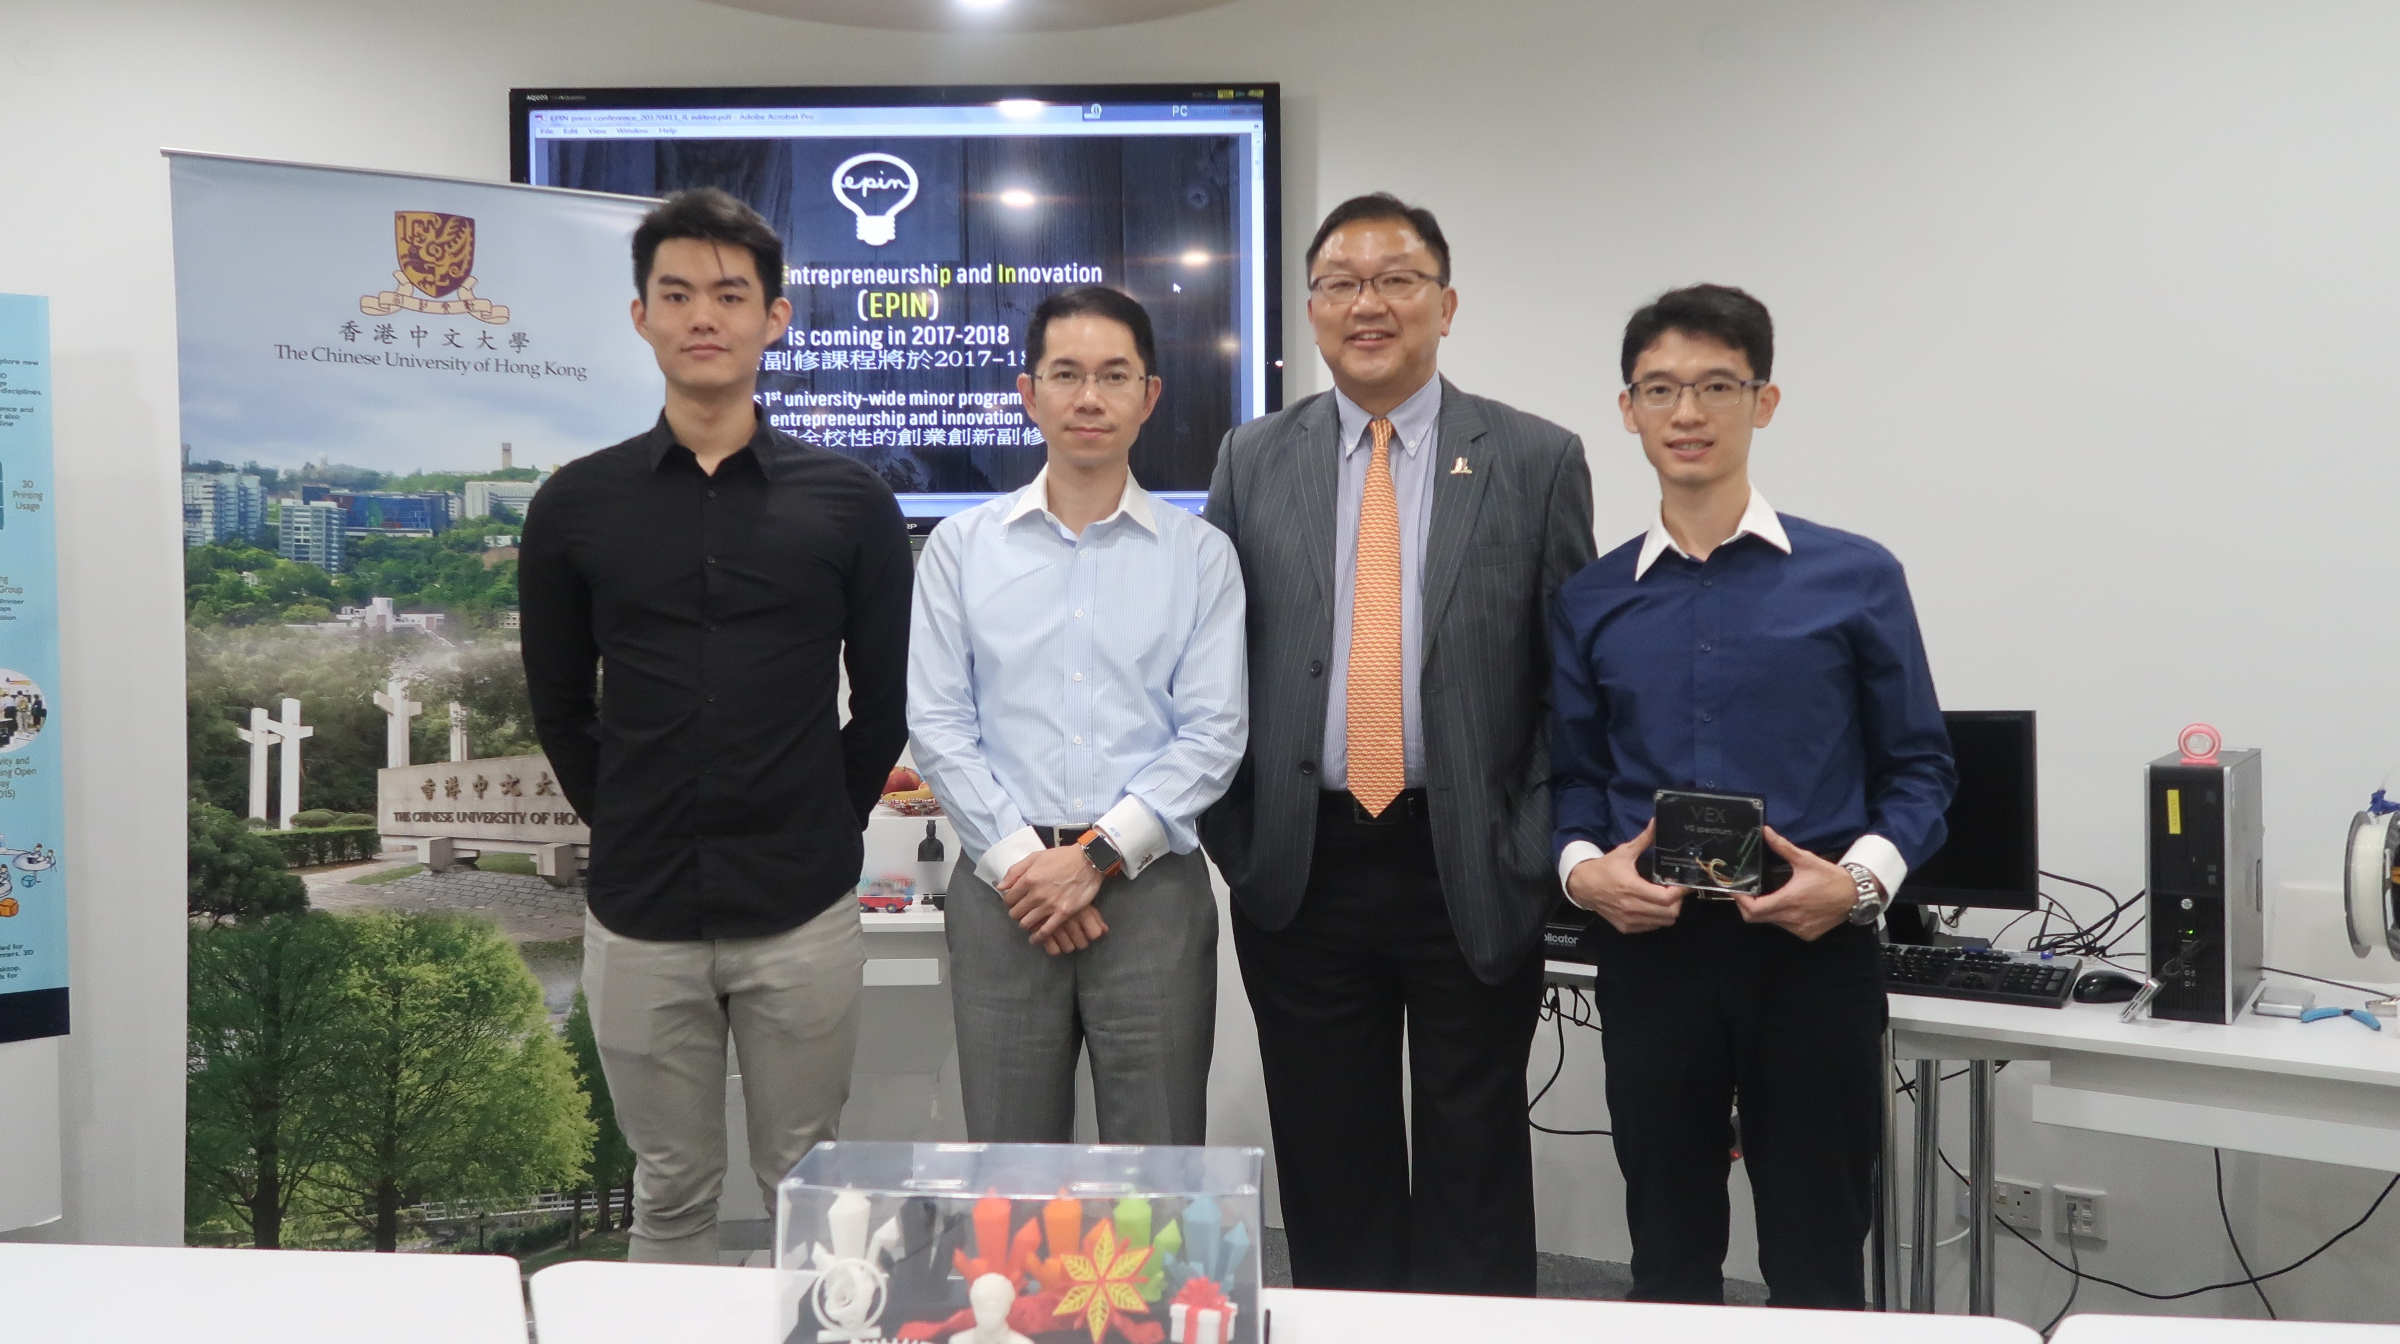 (From left) Mr. James Chen, Year 2 student, Quantitative Finance Programme; Dr. Andy Wong,  Assistant Dean of the Faculty of Business Administration and Prof. Kam-fai Wong, Associate Dean of the Faculty of Engineering, both are Co-directors of the EPIN Minor Programme; and Dr. Jianwei Chen, Research Associate, Department of Mechanical and Automation Engineering, CUHK.